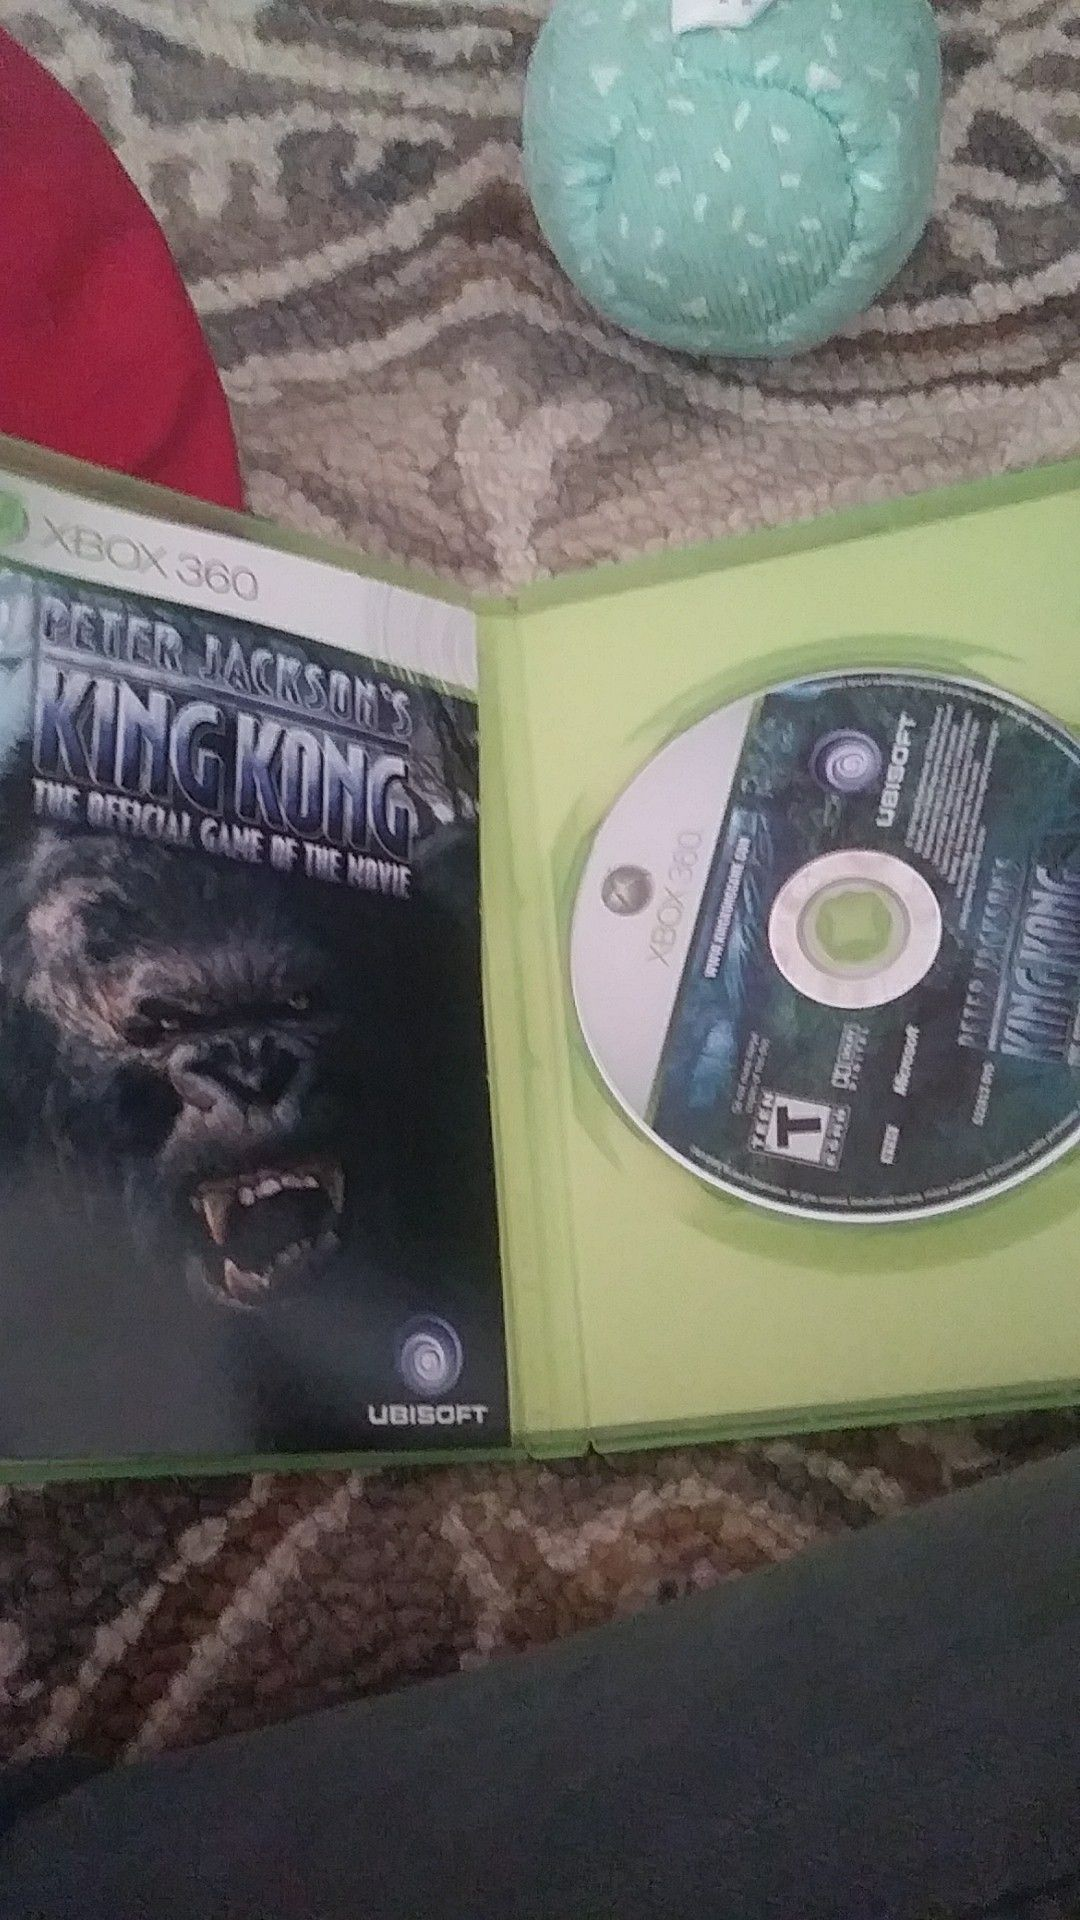 King kong the offical game of the movie